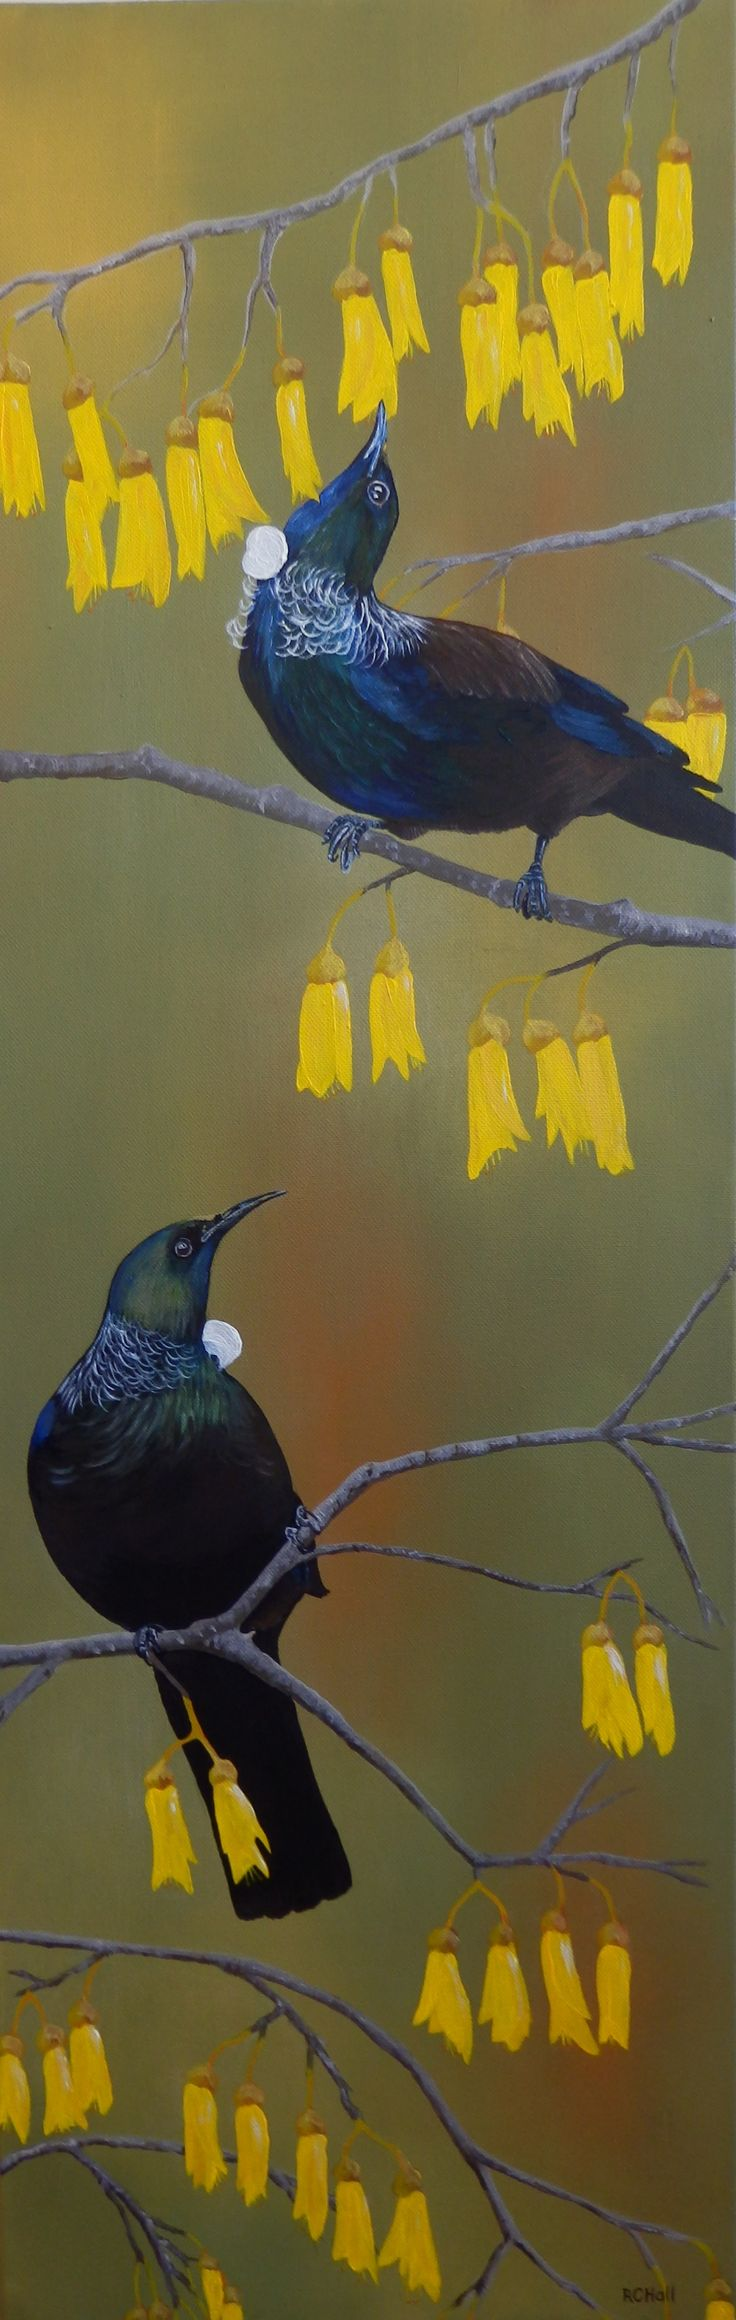 Tuis in Kowhai Tree - Acrylic painting by New Zealand Artist Robyn Hall SOLD